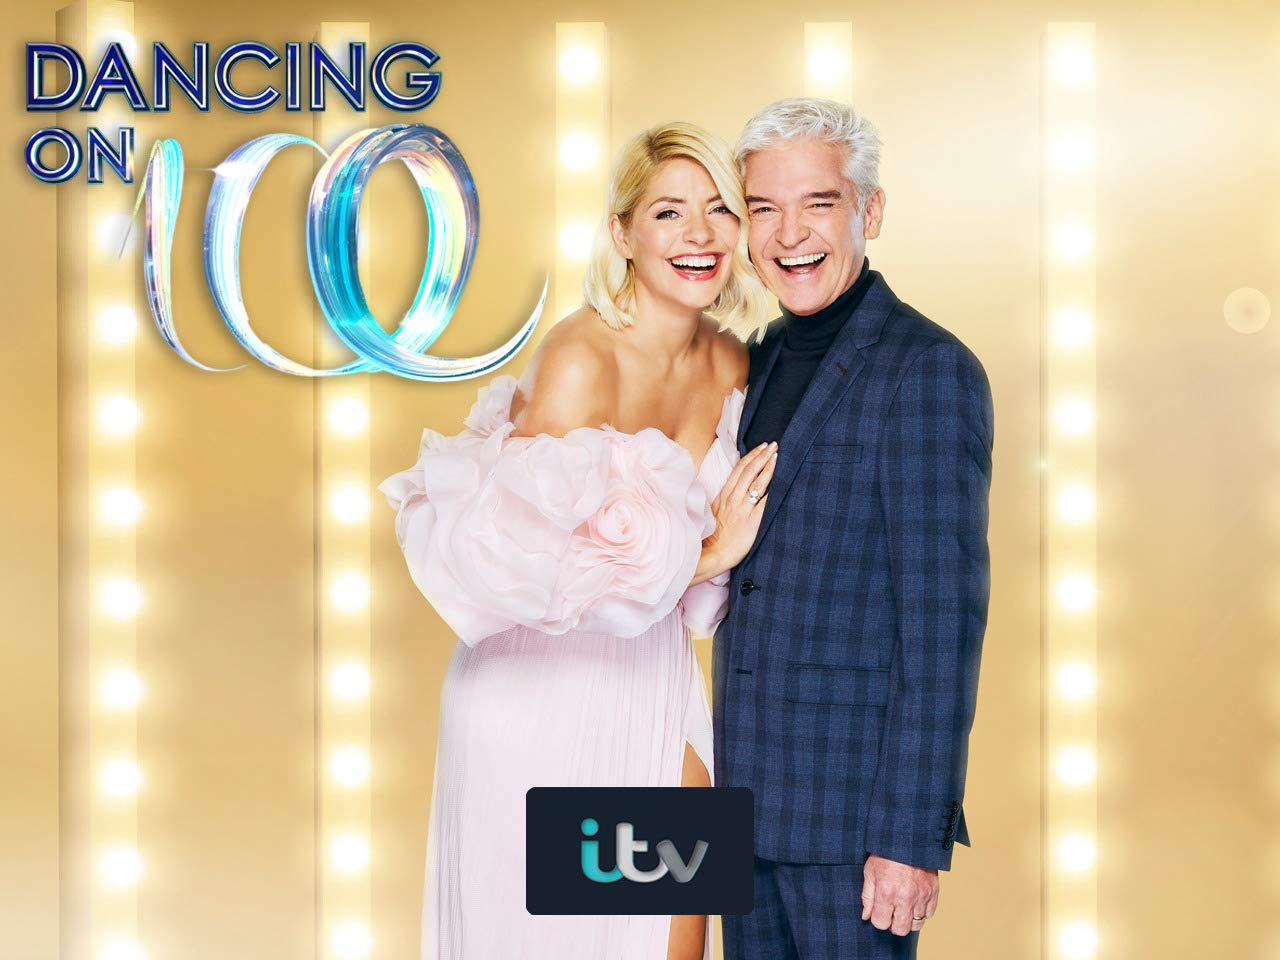 Watch Dancing On Ice 2020 Prime Video